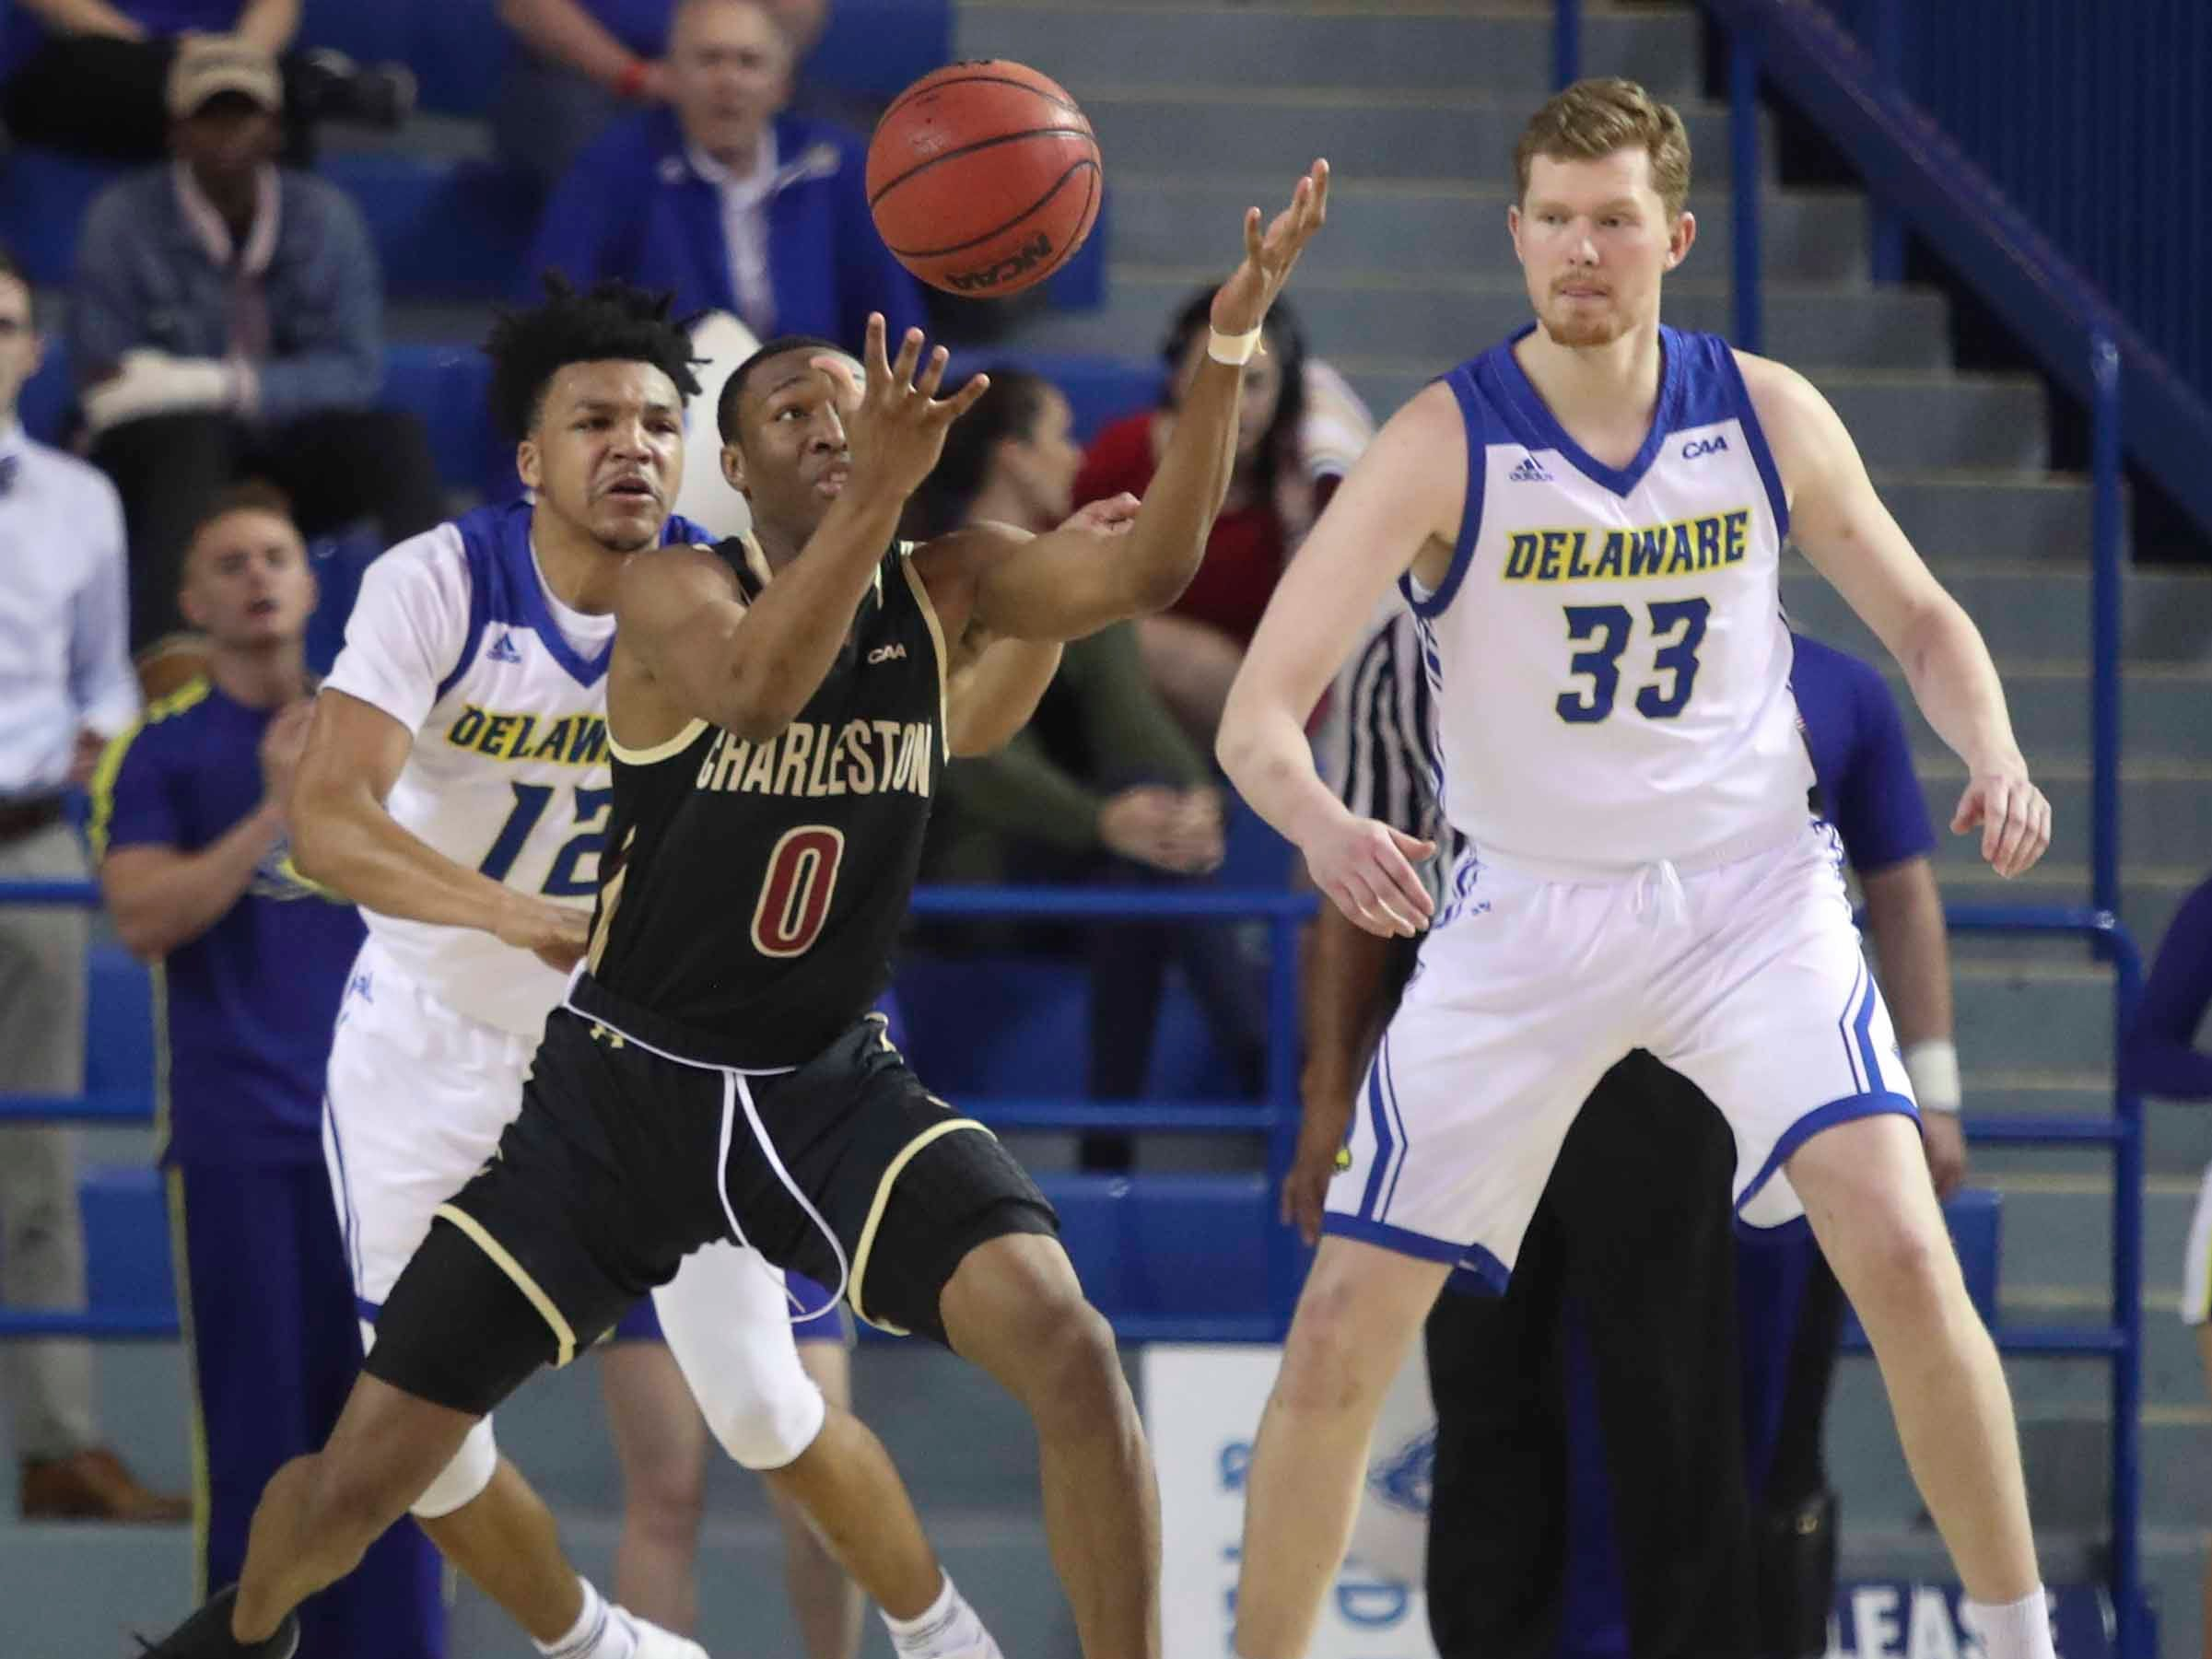 Charleston's Jaylen Richard (0) temporarily loses the ball in front of Delaware's Ithiel Horton (left) and Collin Goss in the first half at the Bob Carpenter Center Thursday.